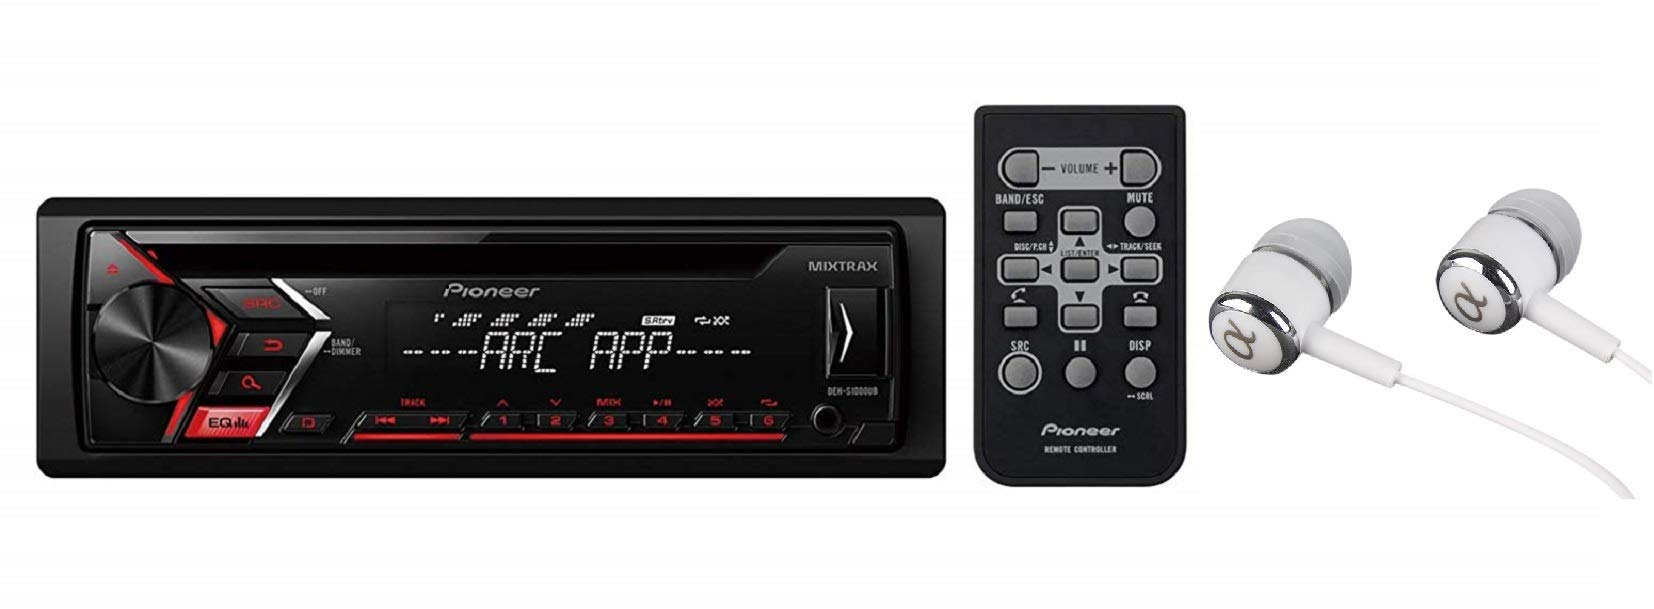 Pioneer DEH-S1000UB Single DIN In-Dash CD, CD-R/RW, MP3, Front USB and Auxiliary Input, AM/FM Detachable Face Plate Car Stereo Receiver w/ MIXTRAX and ARC Support / FREE ALPHASONIK EARBUDS